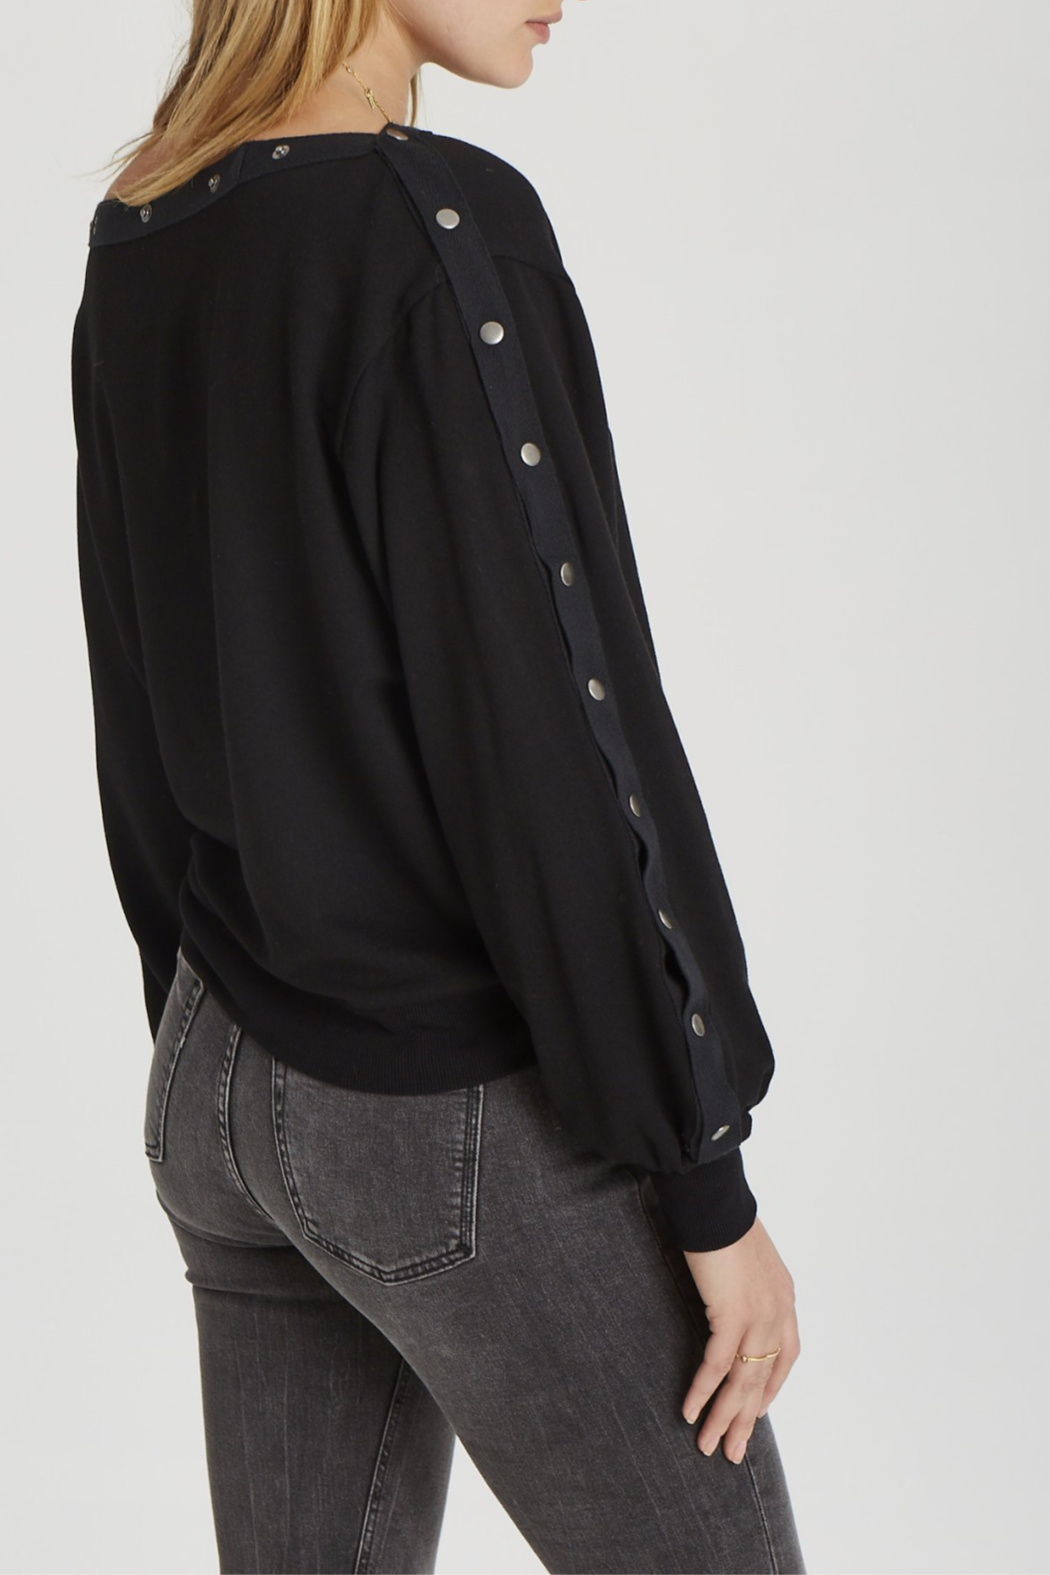 Grey State Tilly Snap-around L/S Top - Front Full Image